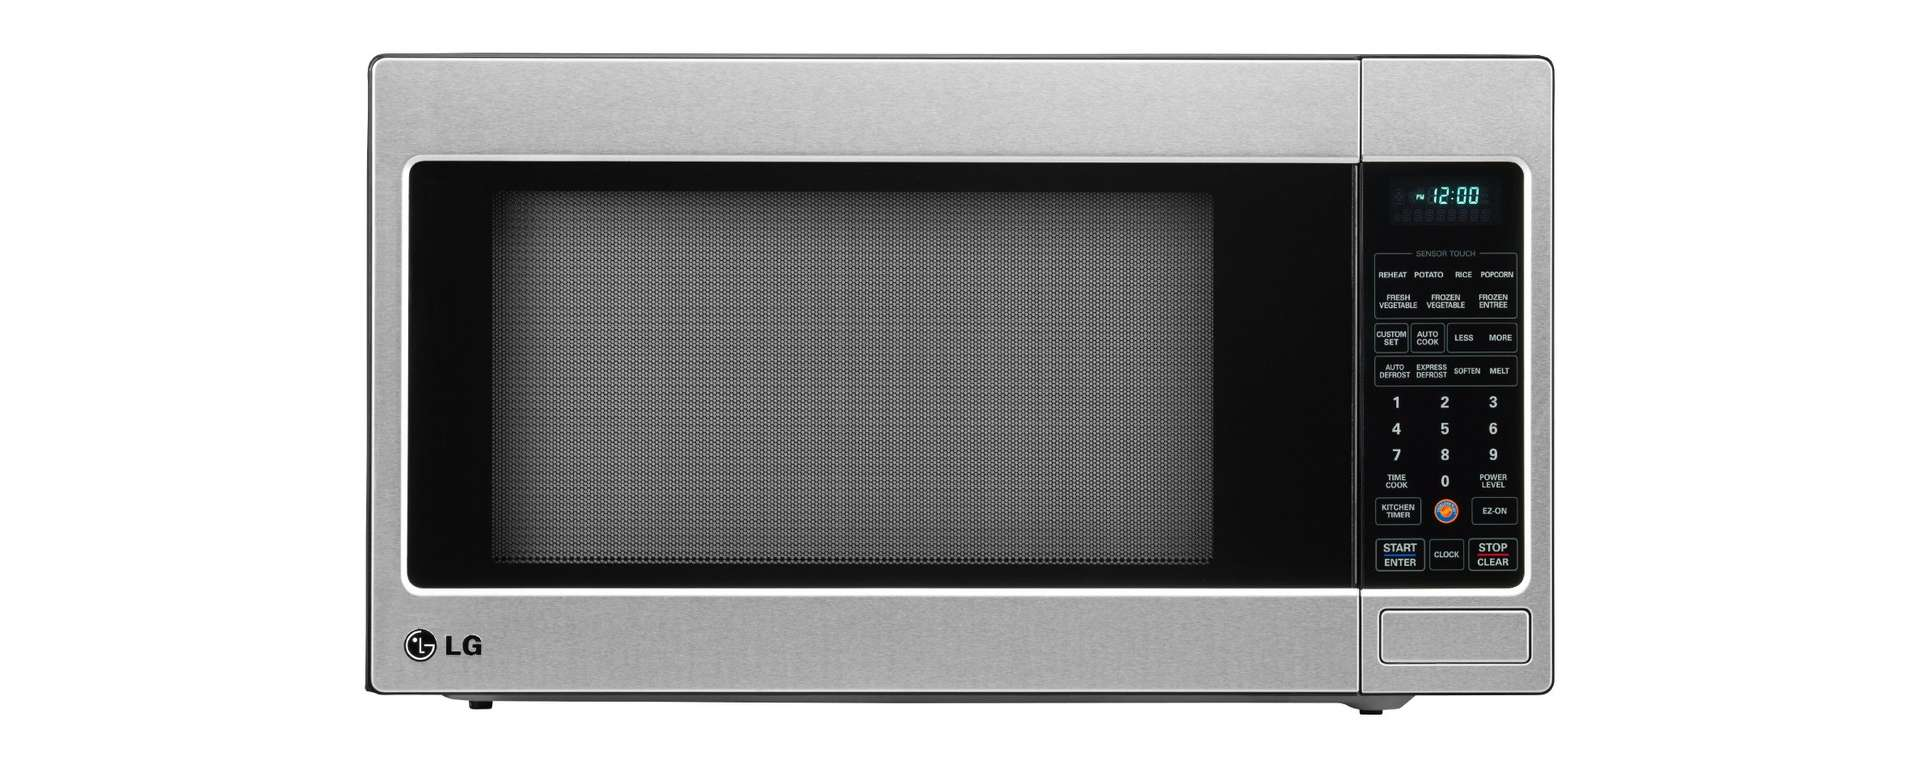 Best Countertop Microwave Consumer Reports Recommended Microwave Ovens By Consumer Reports The